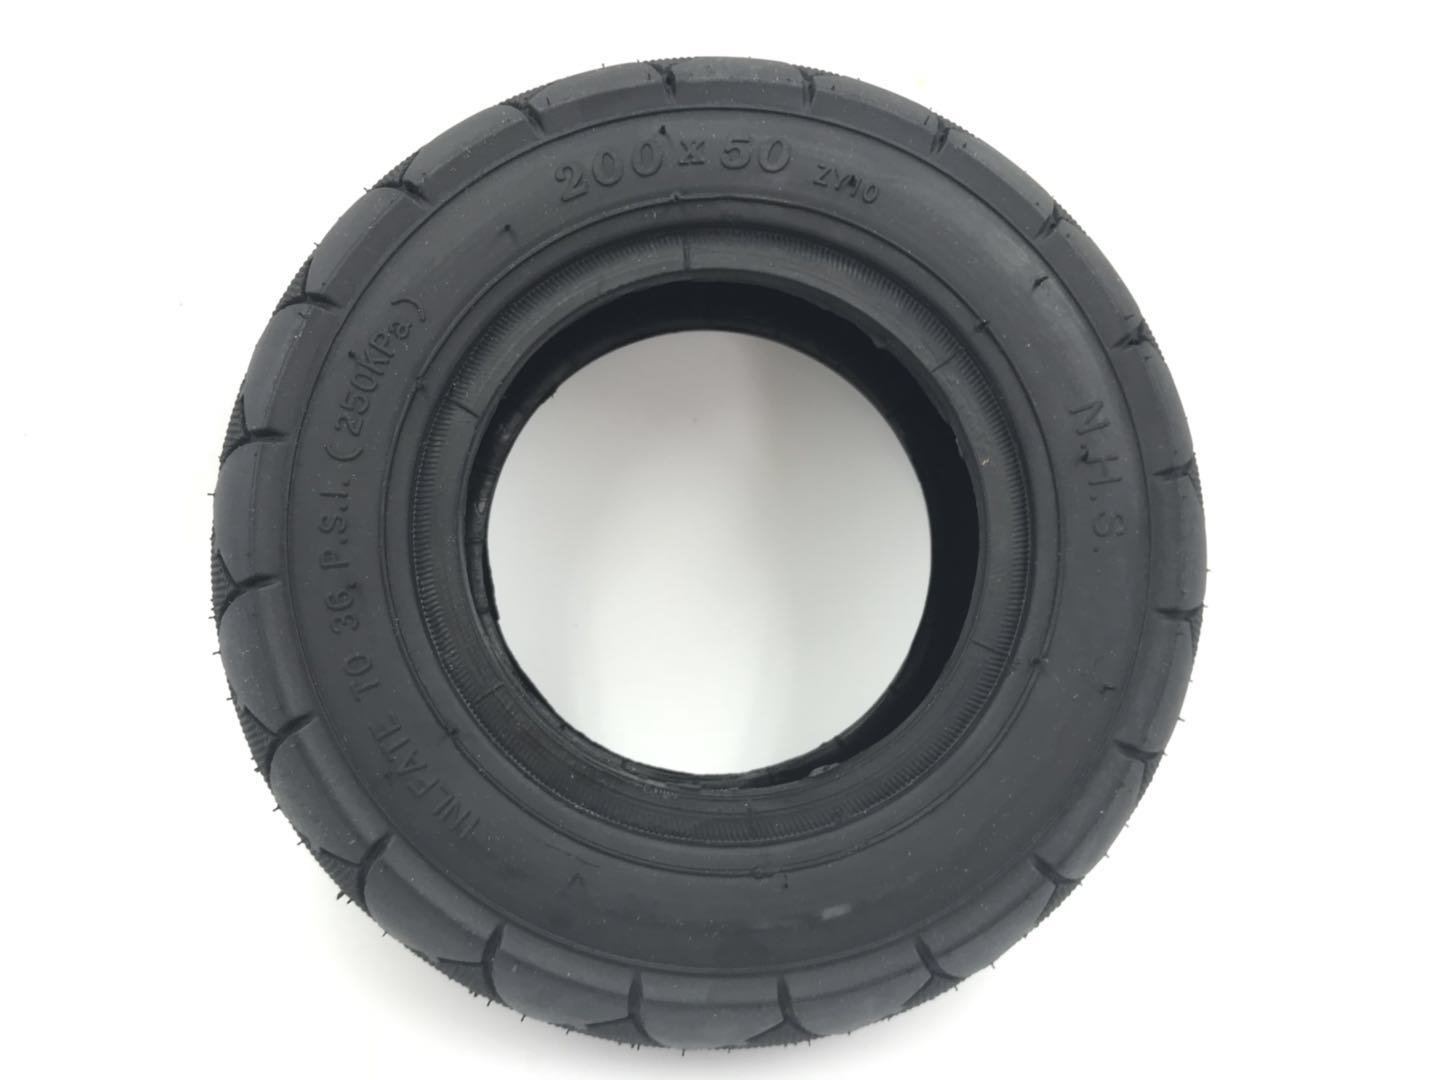 Y&F 200x50 Tire for Gas Scooter, Go Kart, Pocket Bike, Wheel Chair